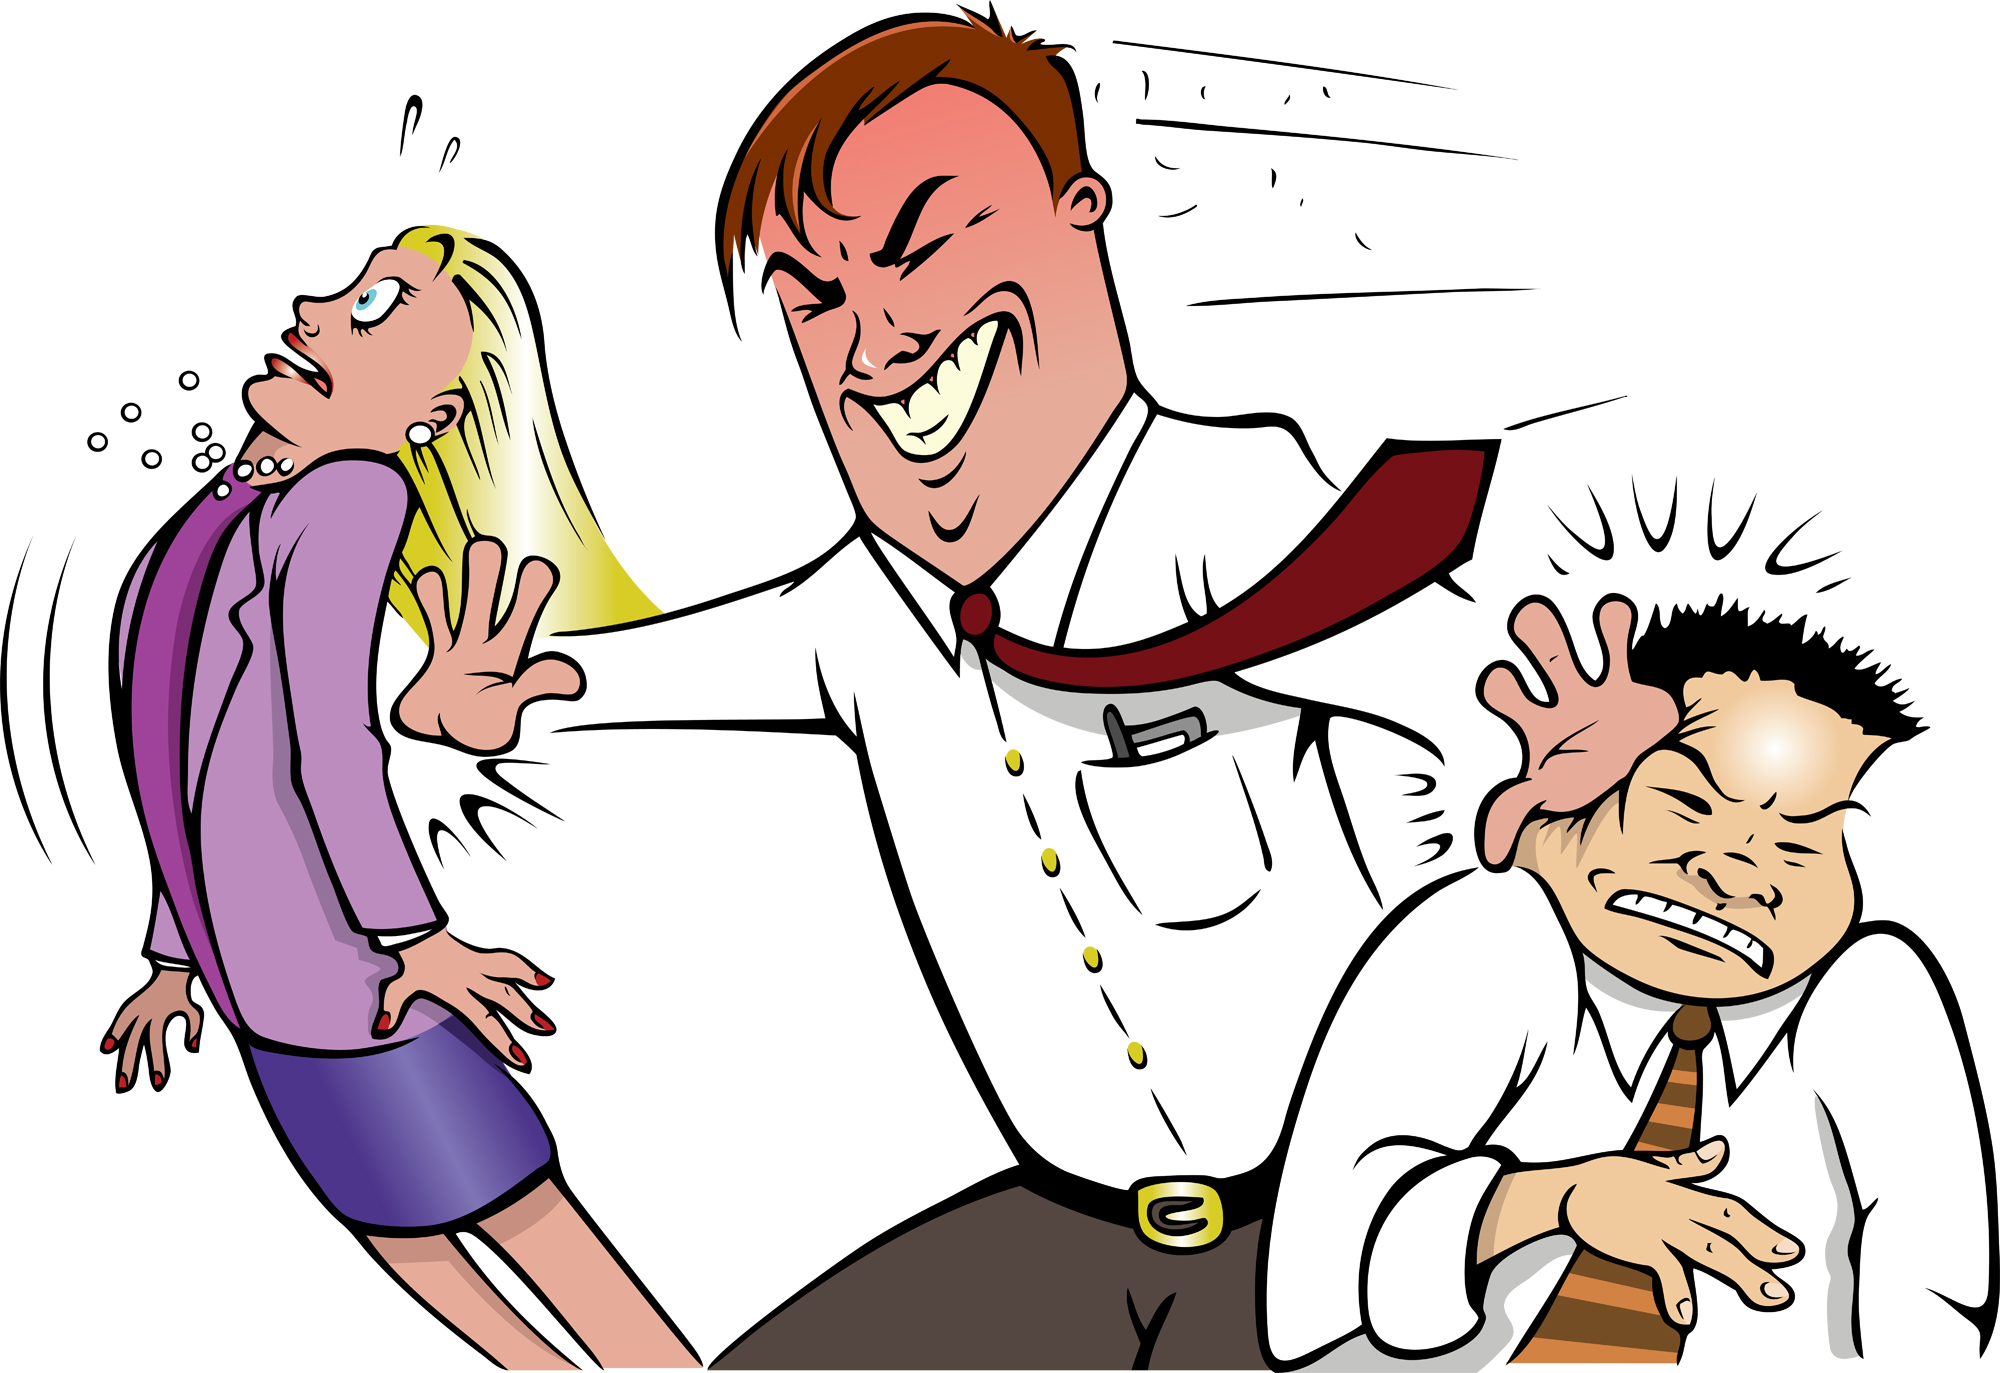 Bully clipart selfish person. Conflict the millennial pastor